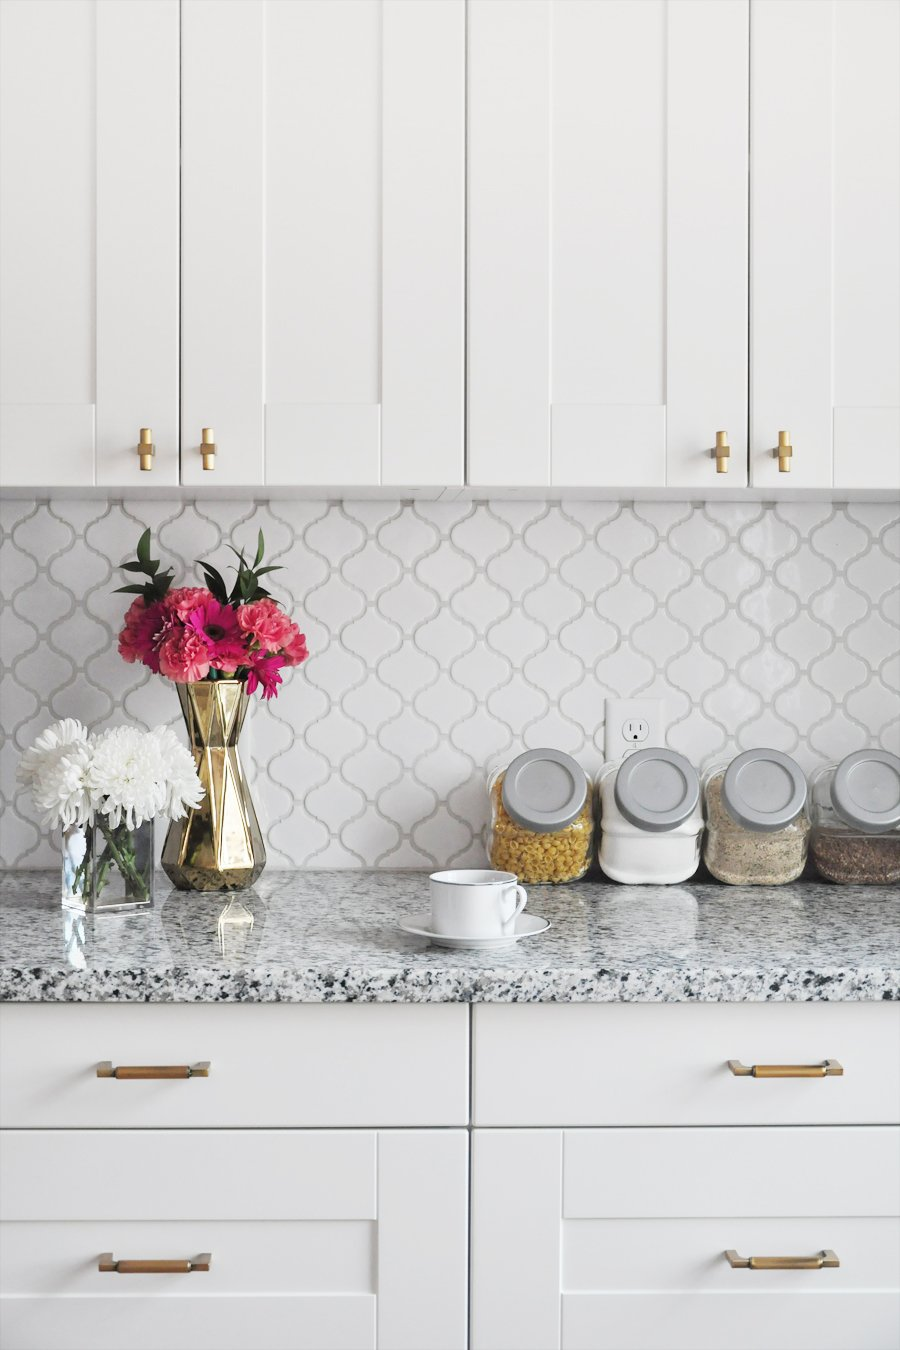 How To Tile a Kitchen Backsplash: DIY Tutorial Sponsored by ...